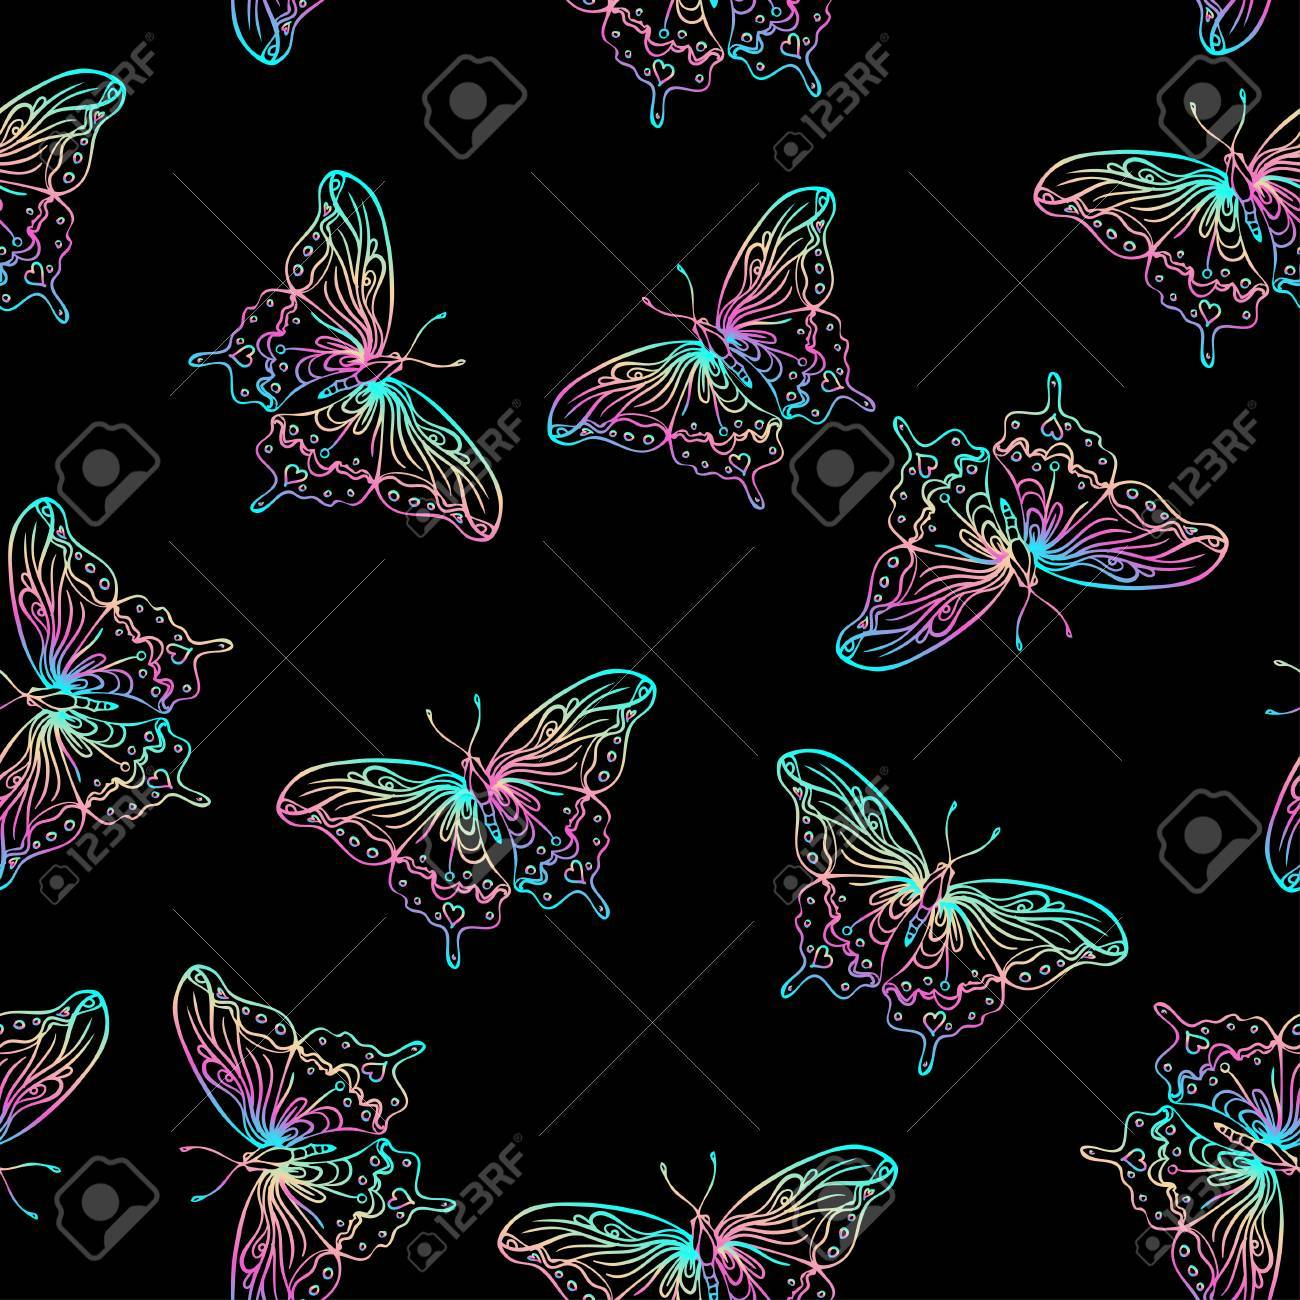 Seamless pattern with butterflies on black background. Highly detailed repetition background for textile, wrapping paper, wallpaper. Isolated vector illustration. Magic, science, astrology, alchemy. - 79141544